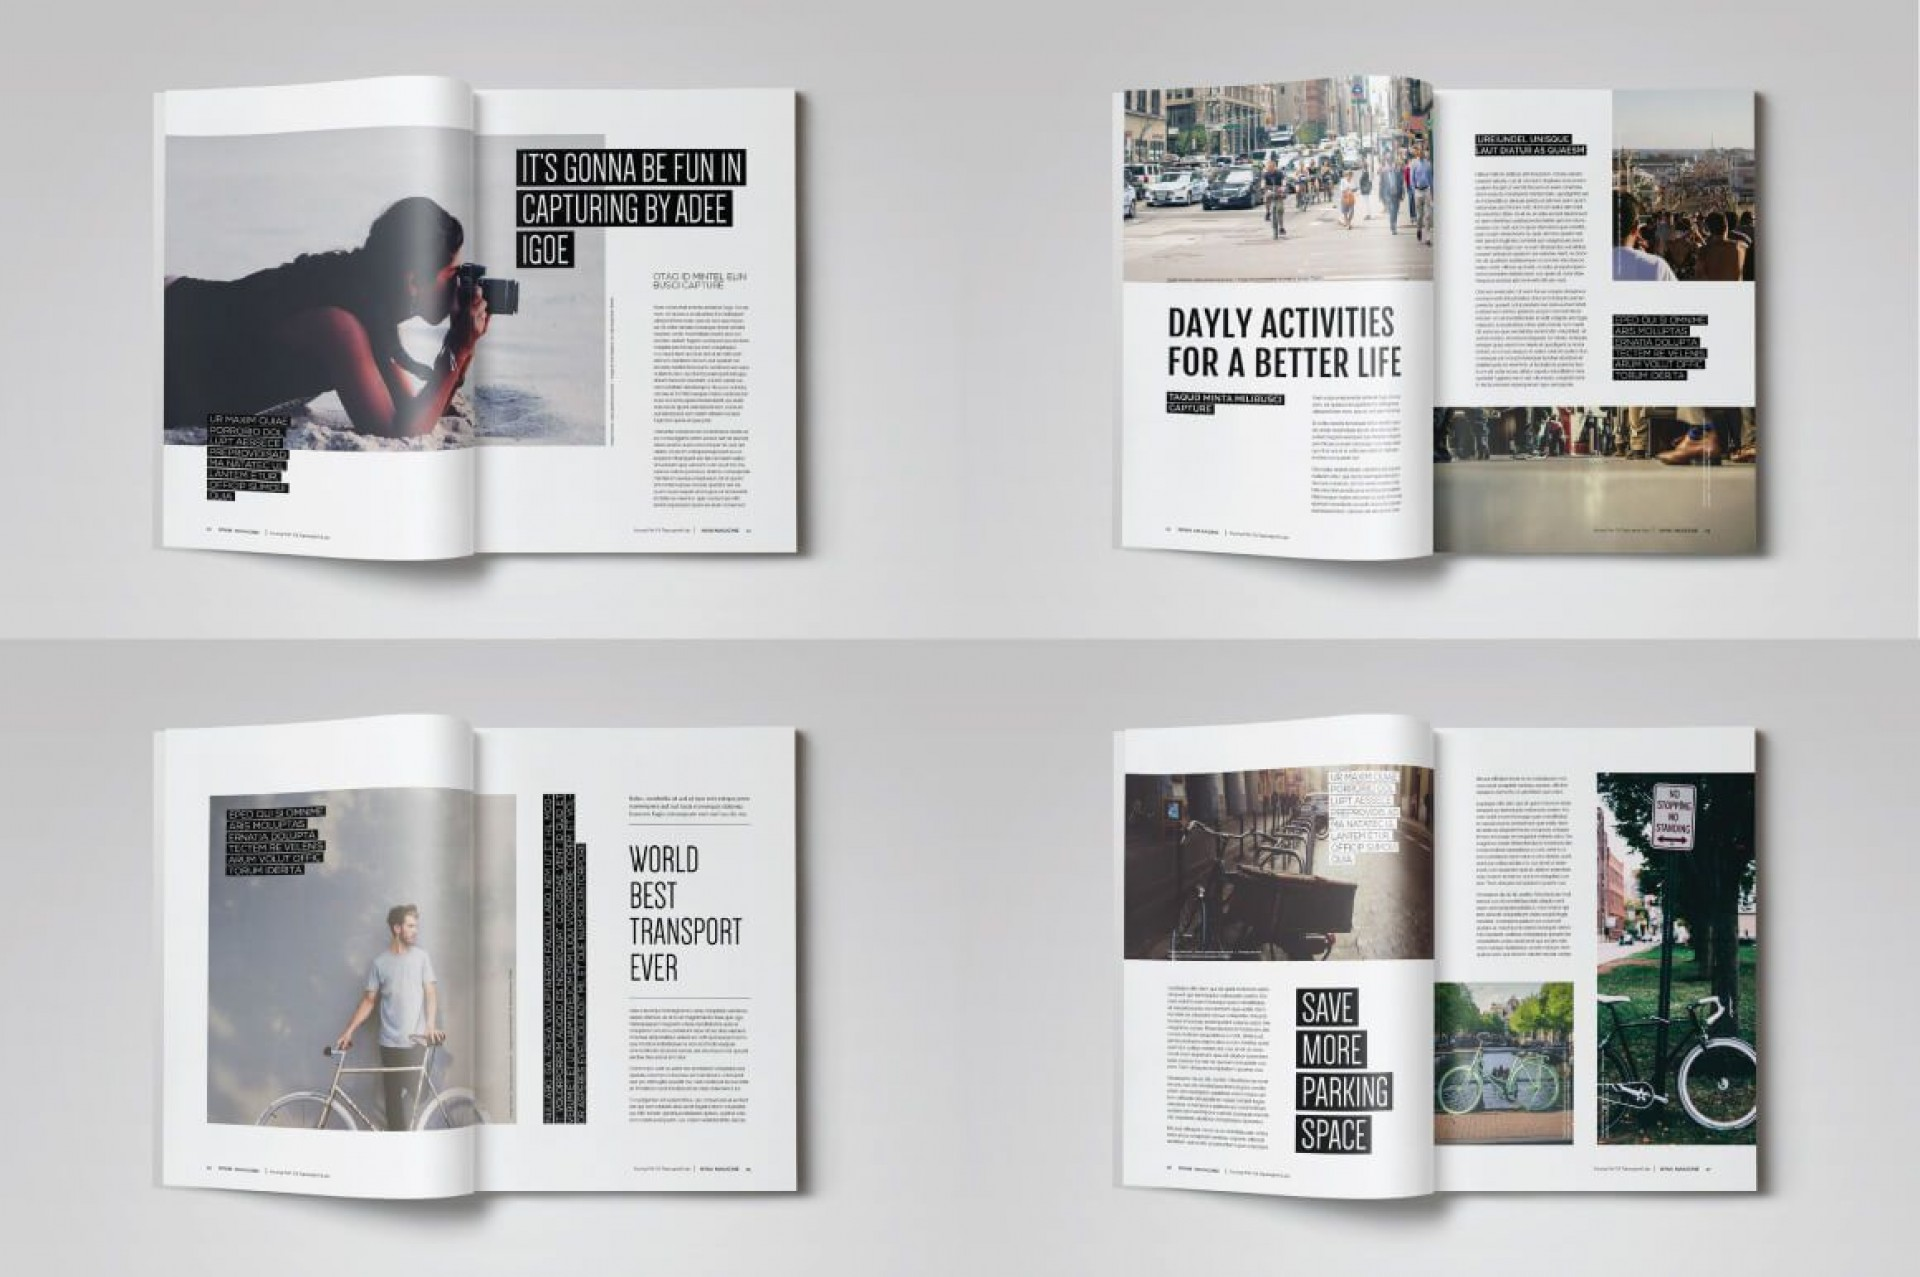 004 Top Magazine Template Free Word Image  For Microsoft Download Article1920